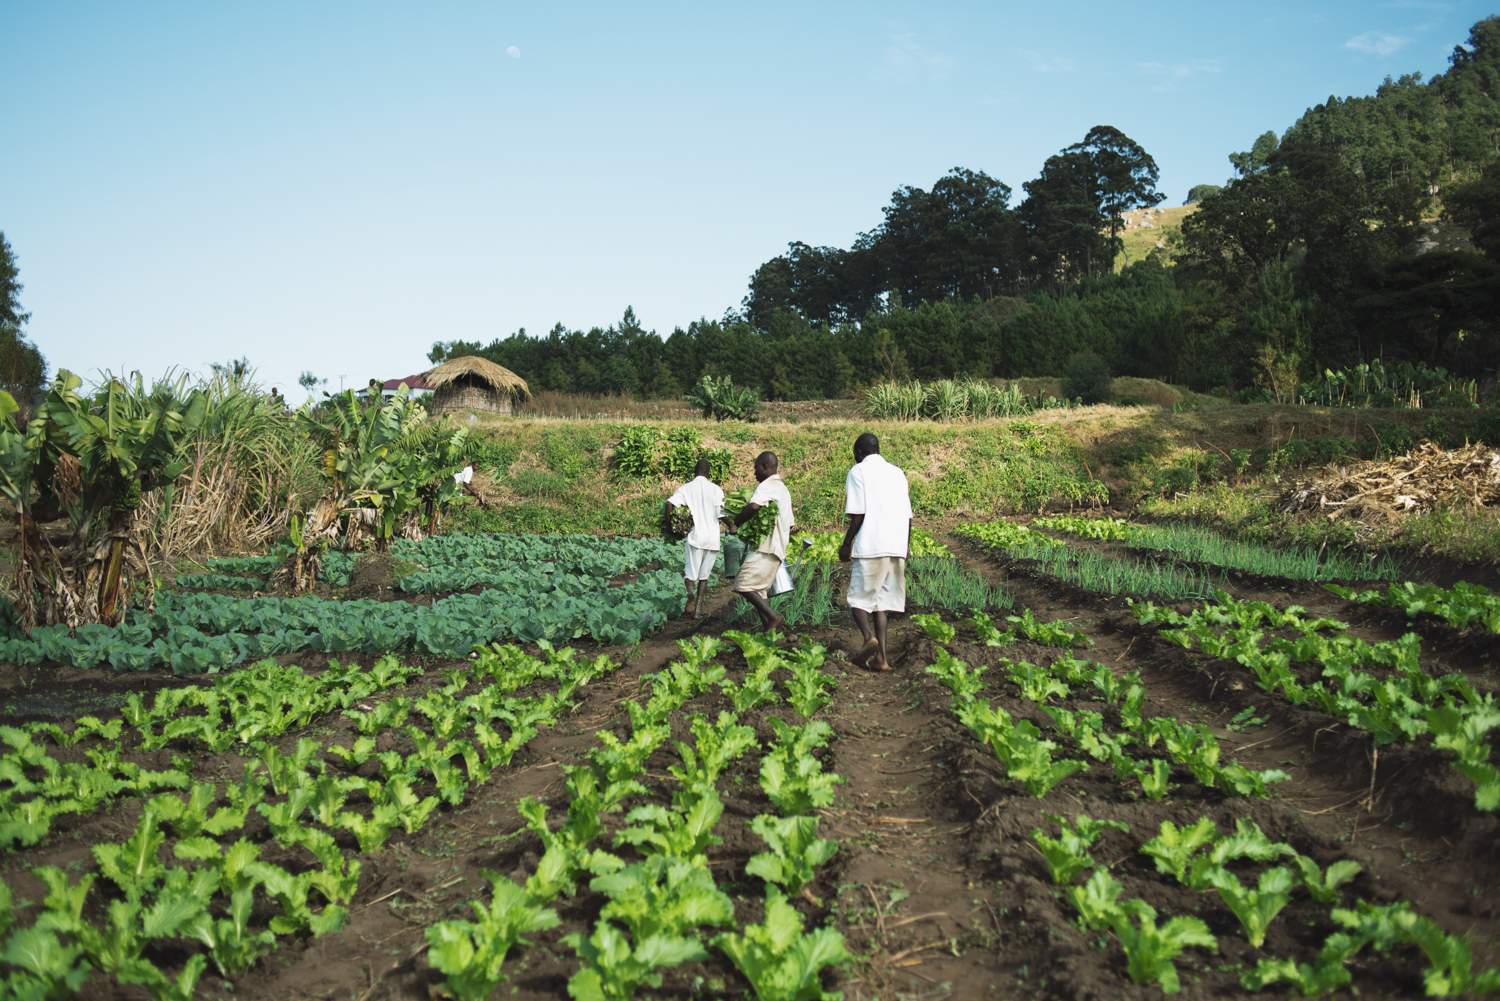 Inmates at Dedza Prison tend to crops on the prison farm on Sunday, April 24, 2018. Inmates grow carrots, cabbages, bananas, maize, and sugar cane as part of the prison's rehabilitation strategy, emphasised by Station Commander Alex Watininkhu Makunganya. | Rosa Furneaux for the Eastern Daily Press